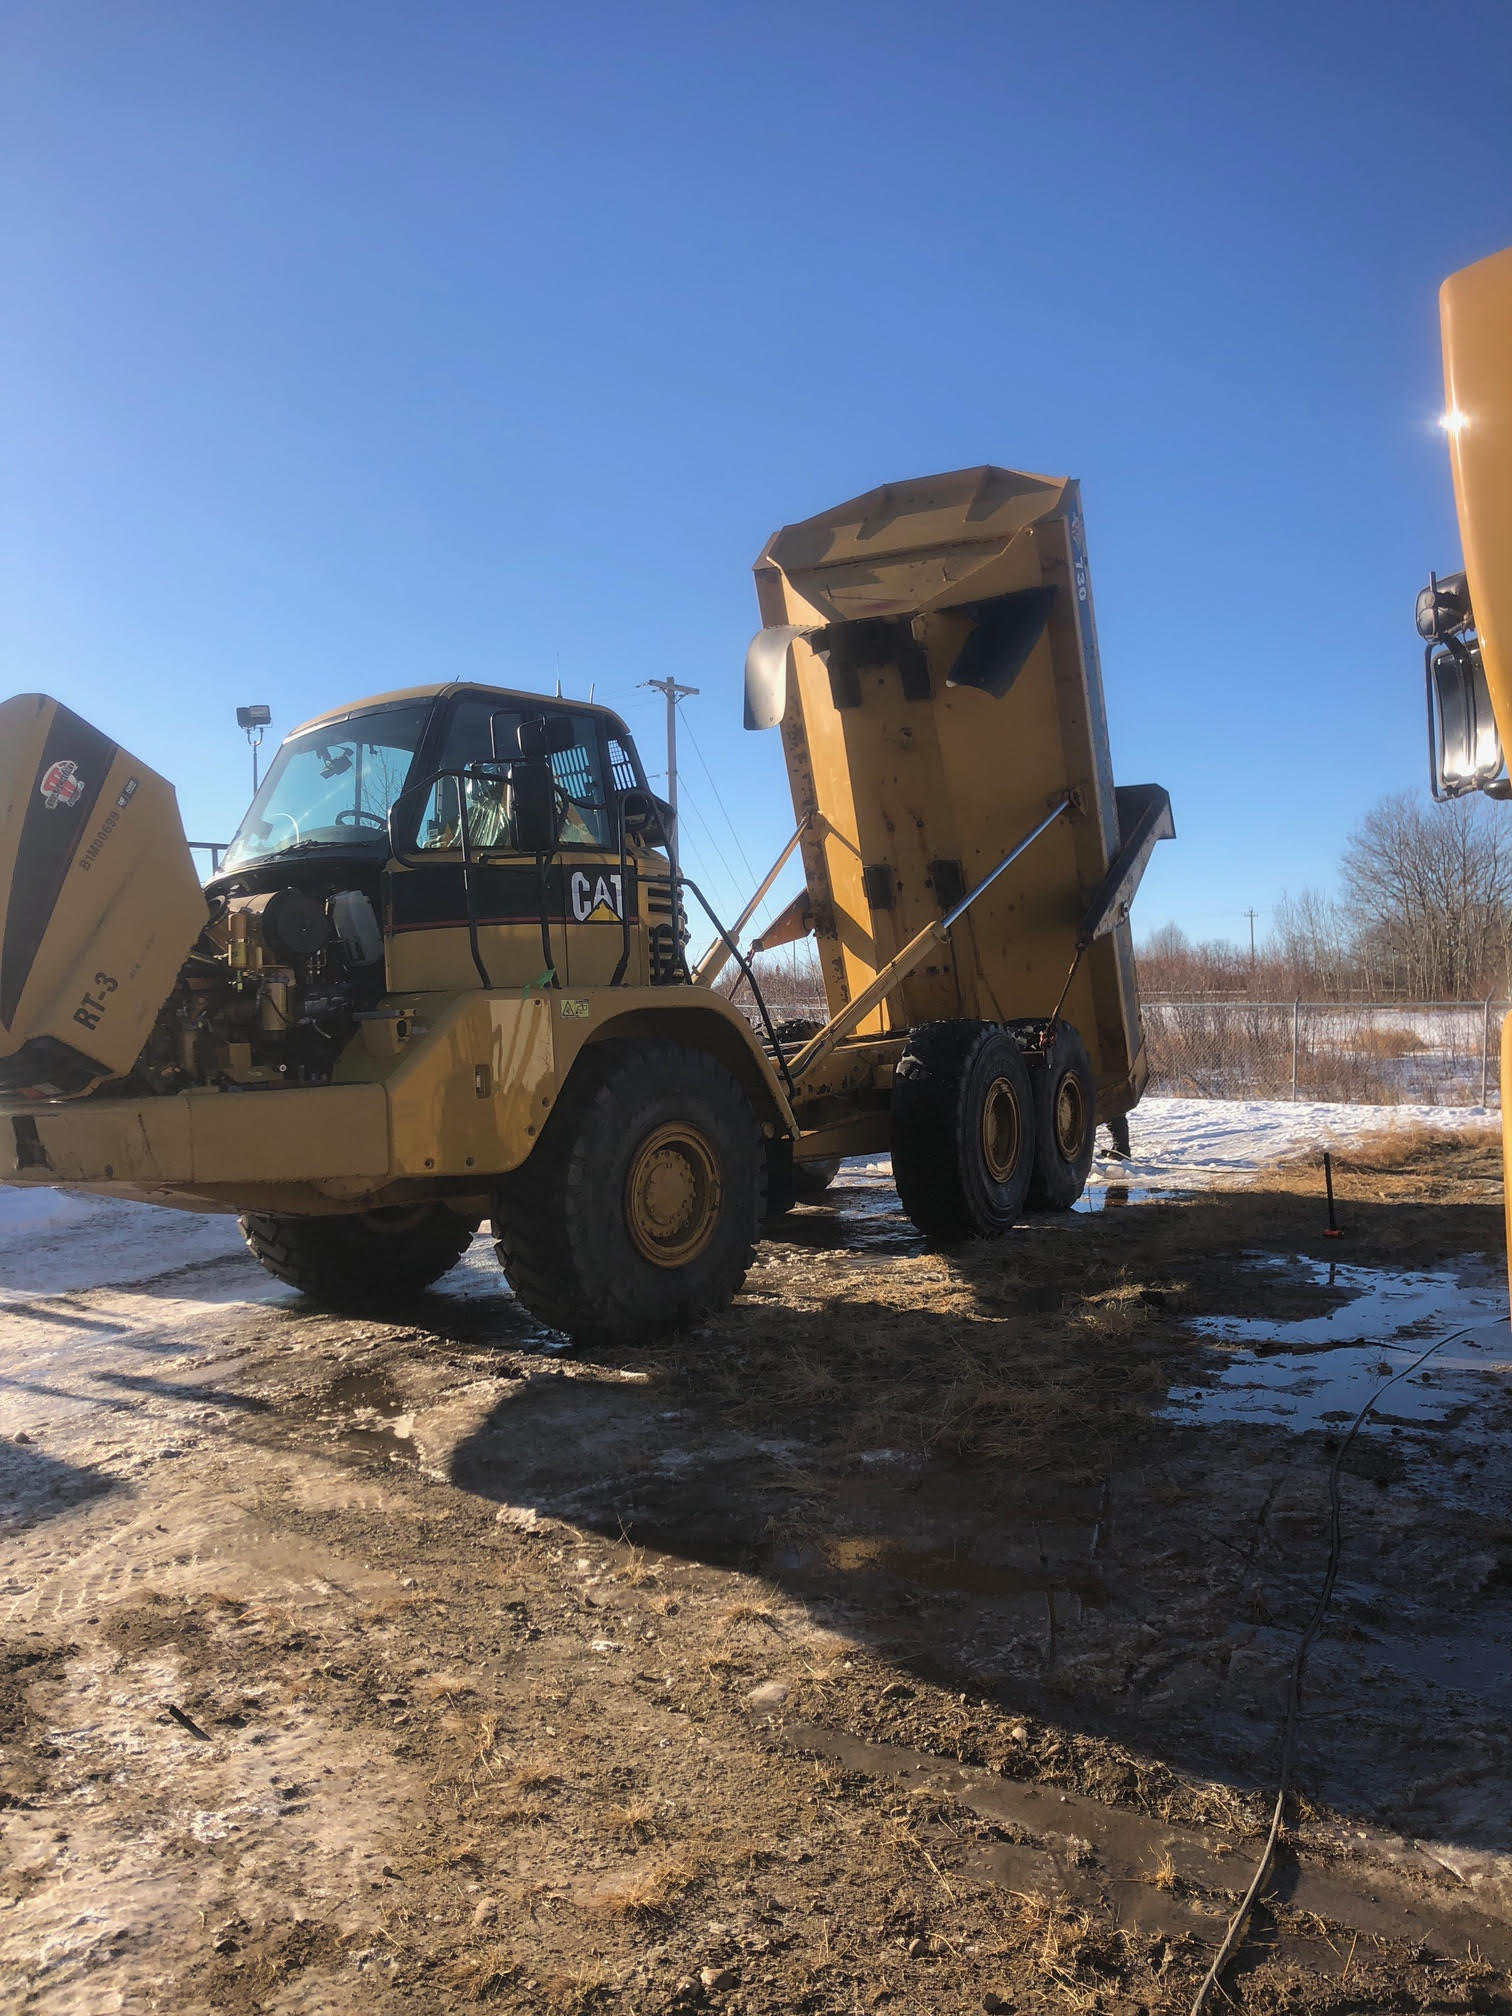 Heavy equipment cleaned by Nuance Pressure Washing Services